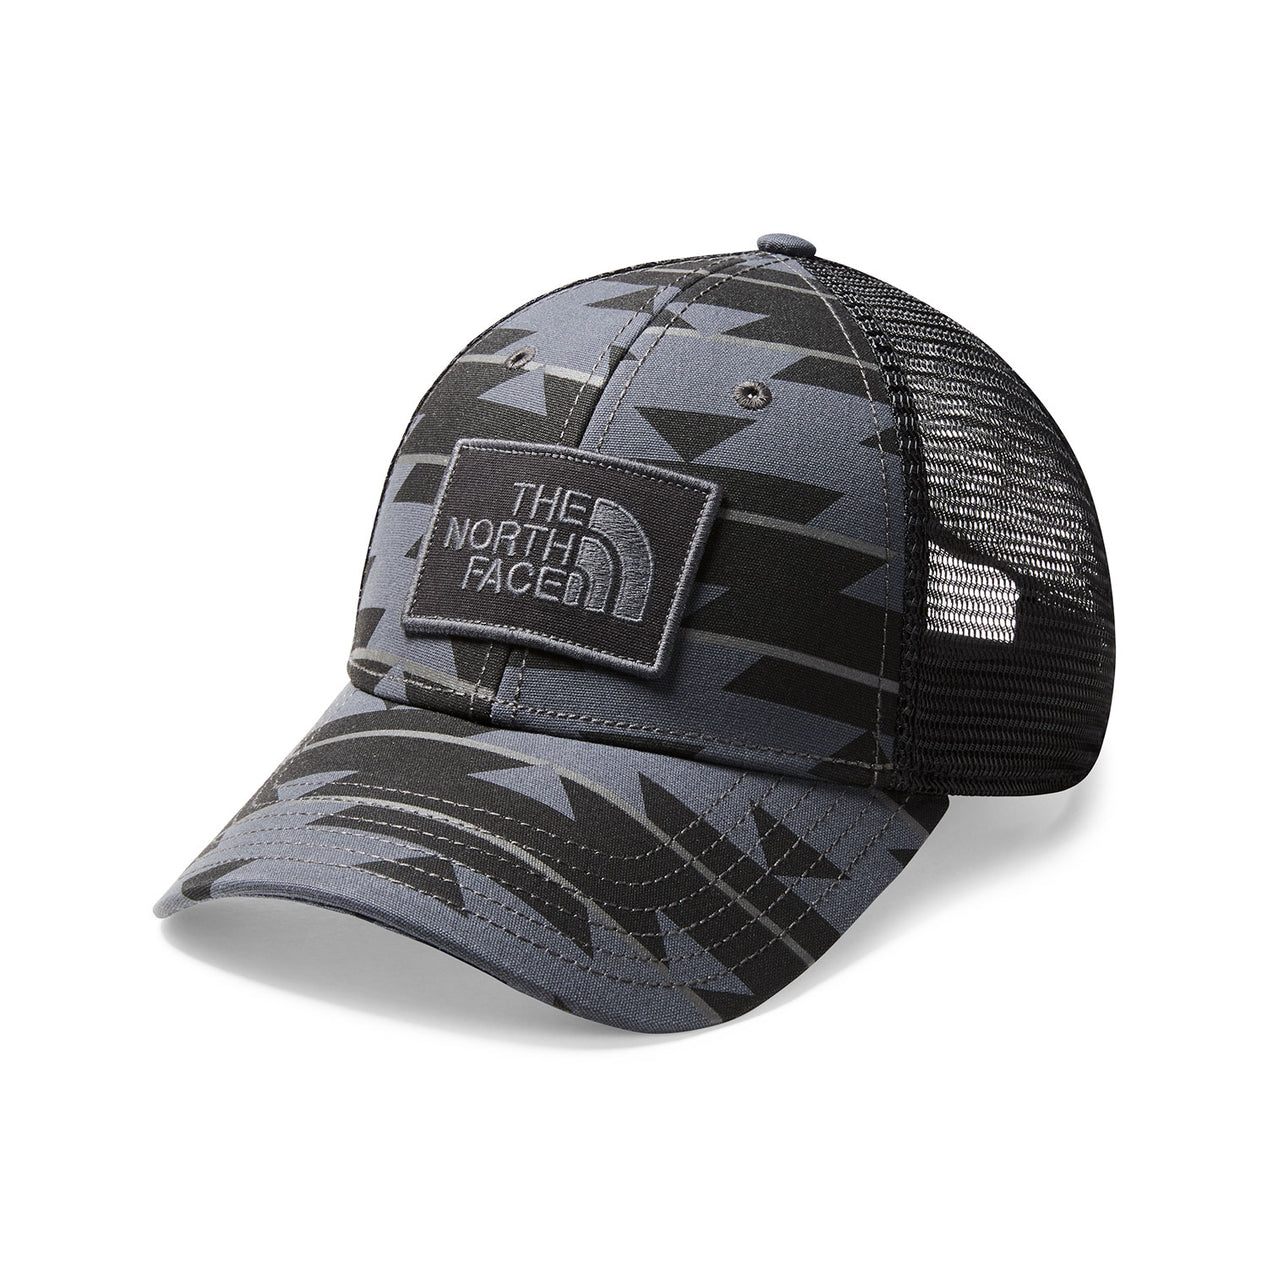 The North Face Printed Mudder Trucker  f346cc0982a